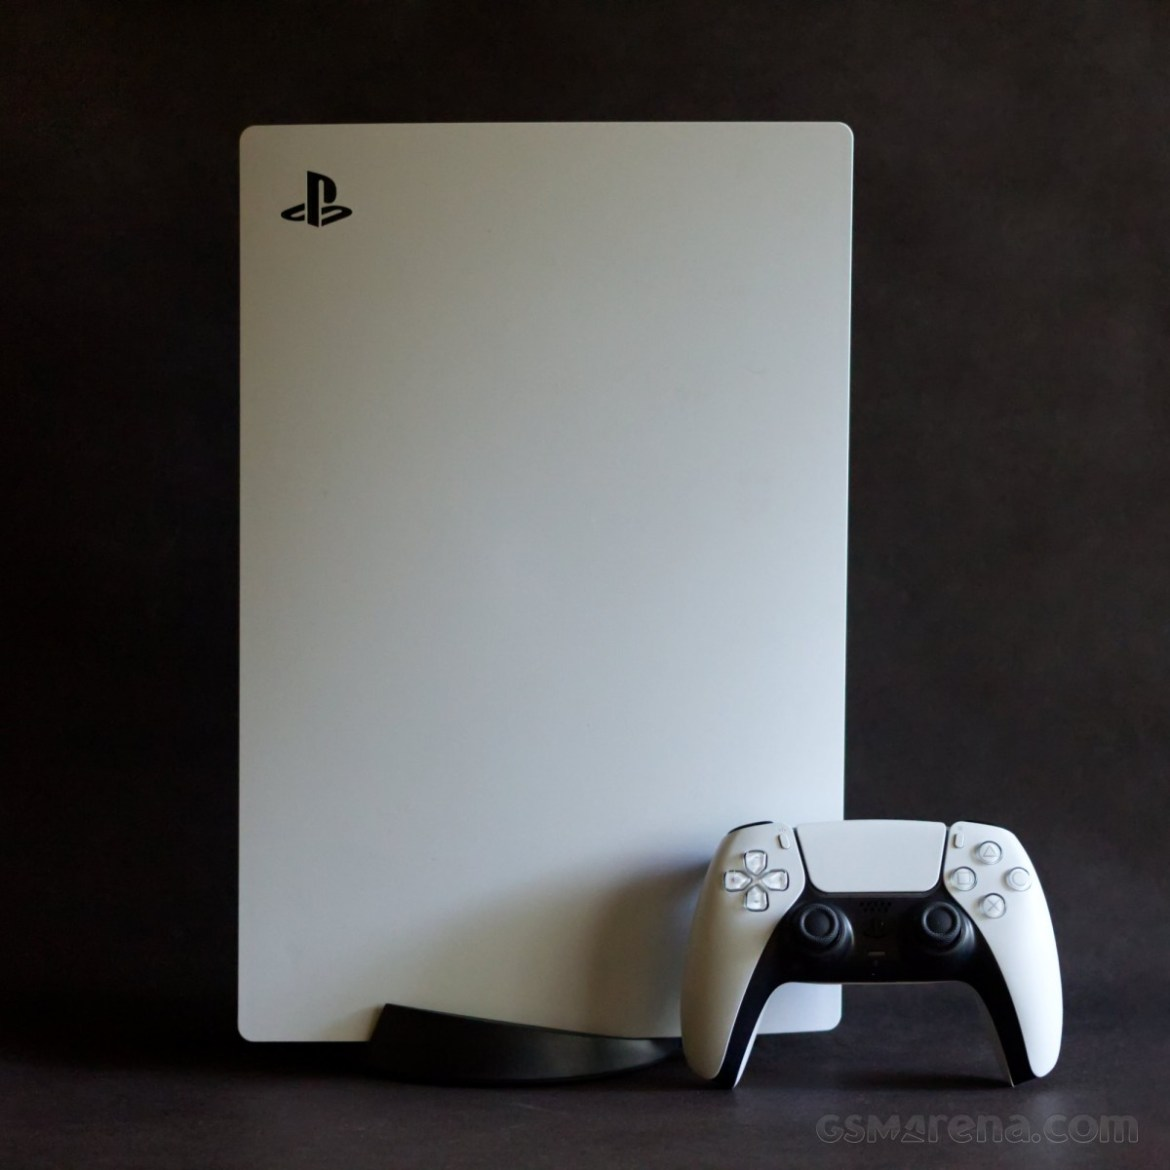 Sony PlayStation 5 now on sale in India